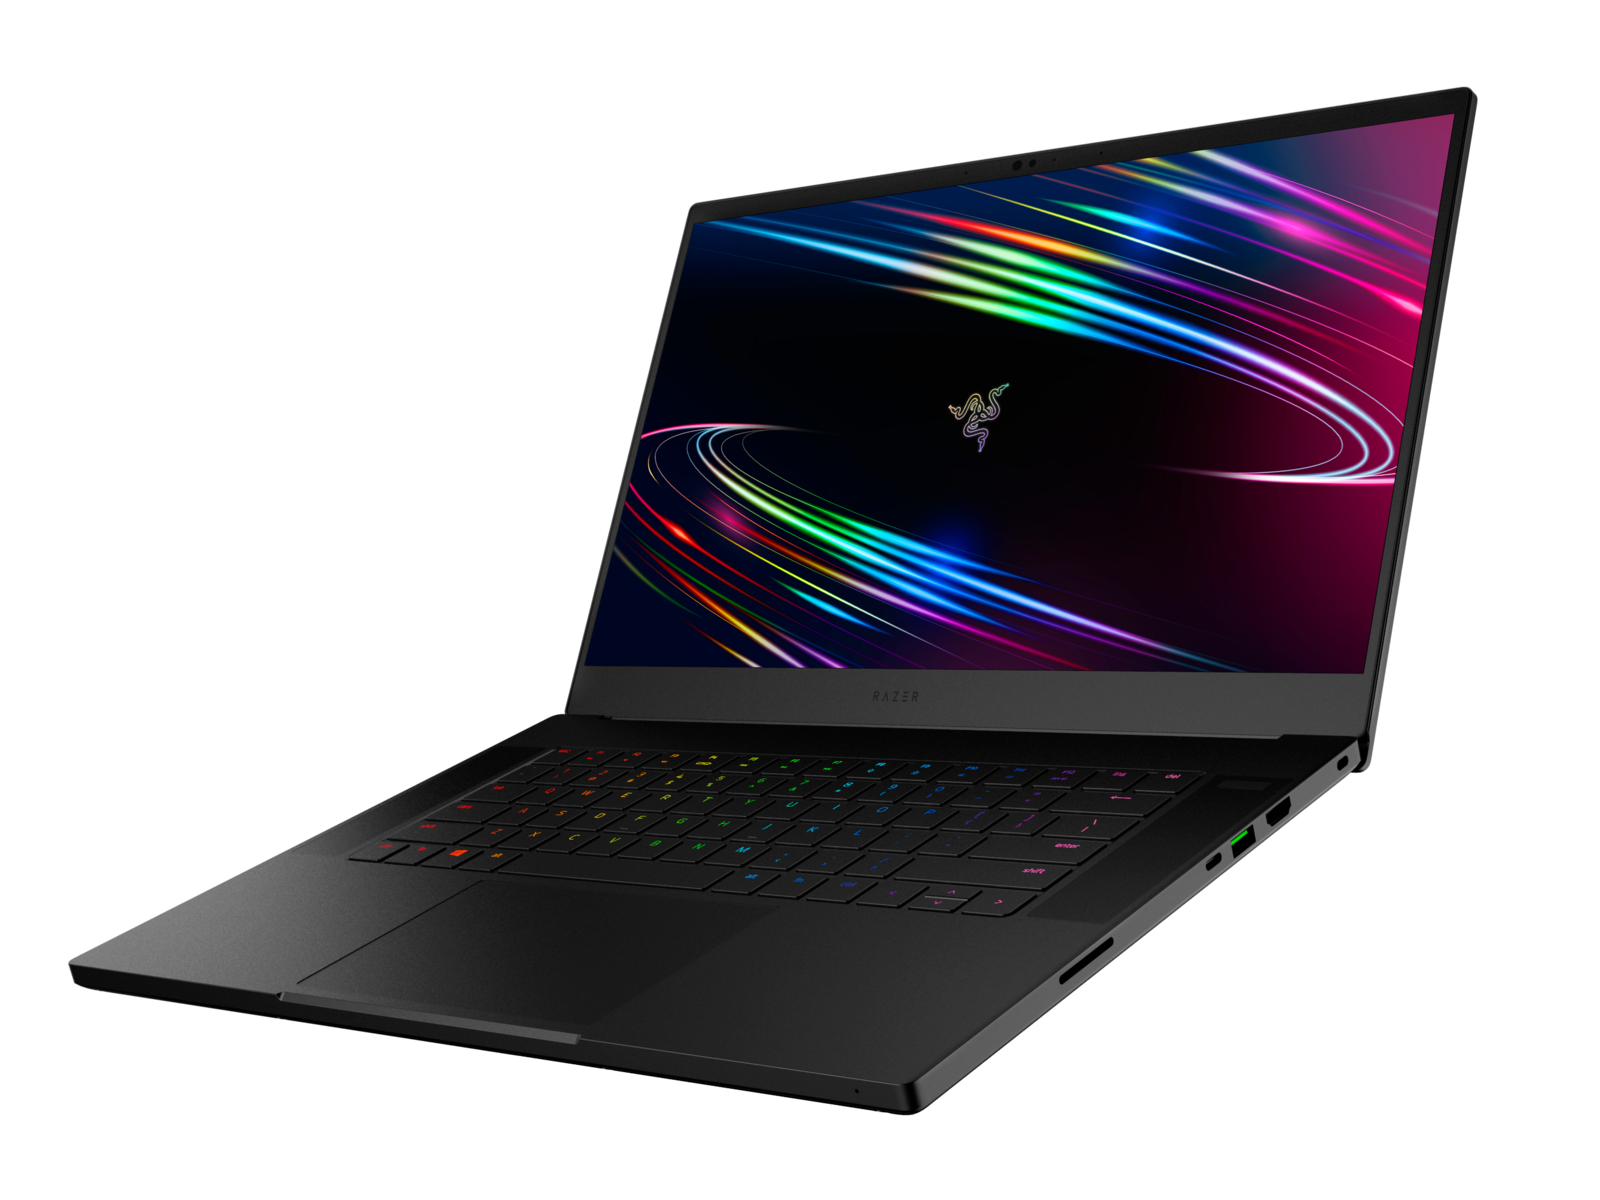 Lenovo's latest gaming laptops pack more efficient NVIDIA graphics